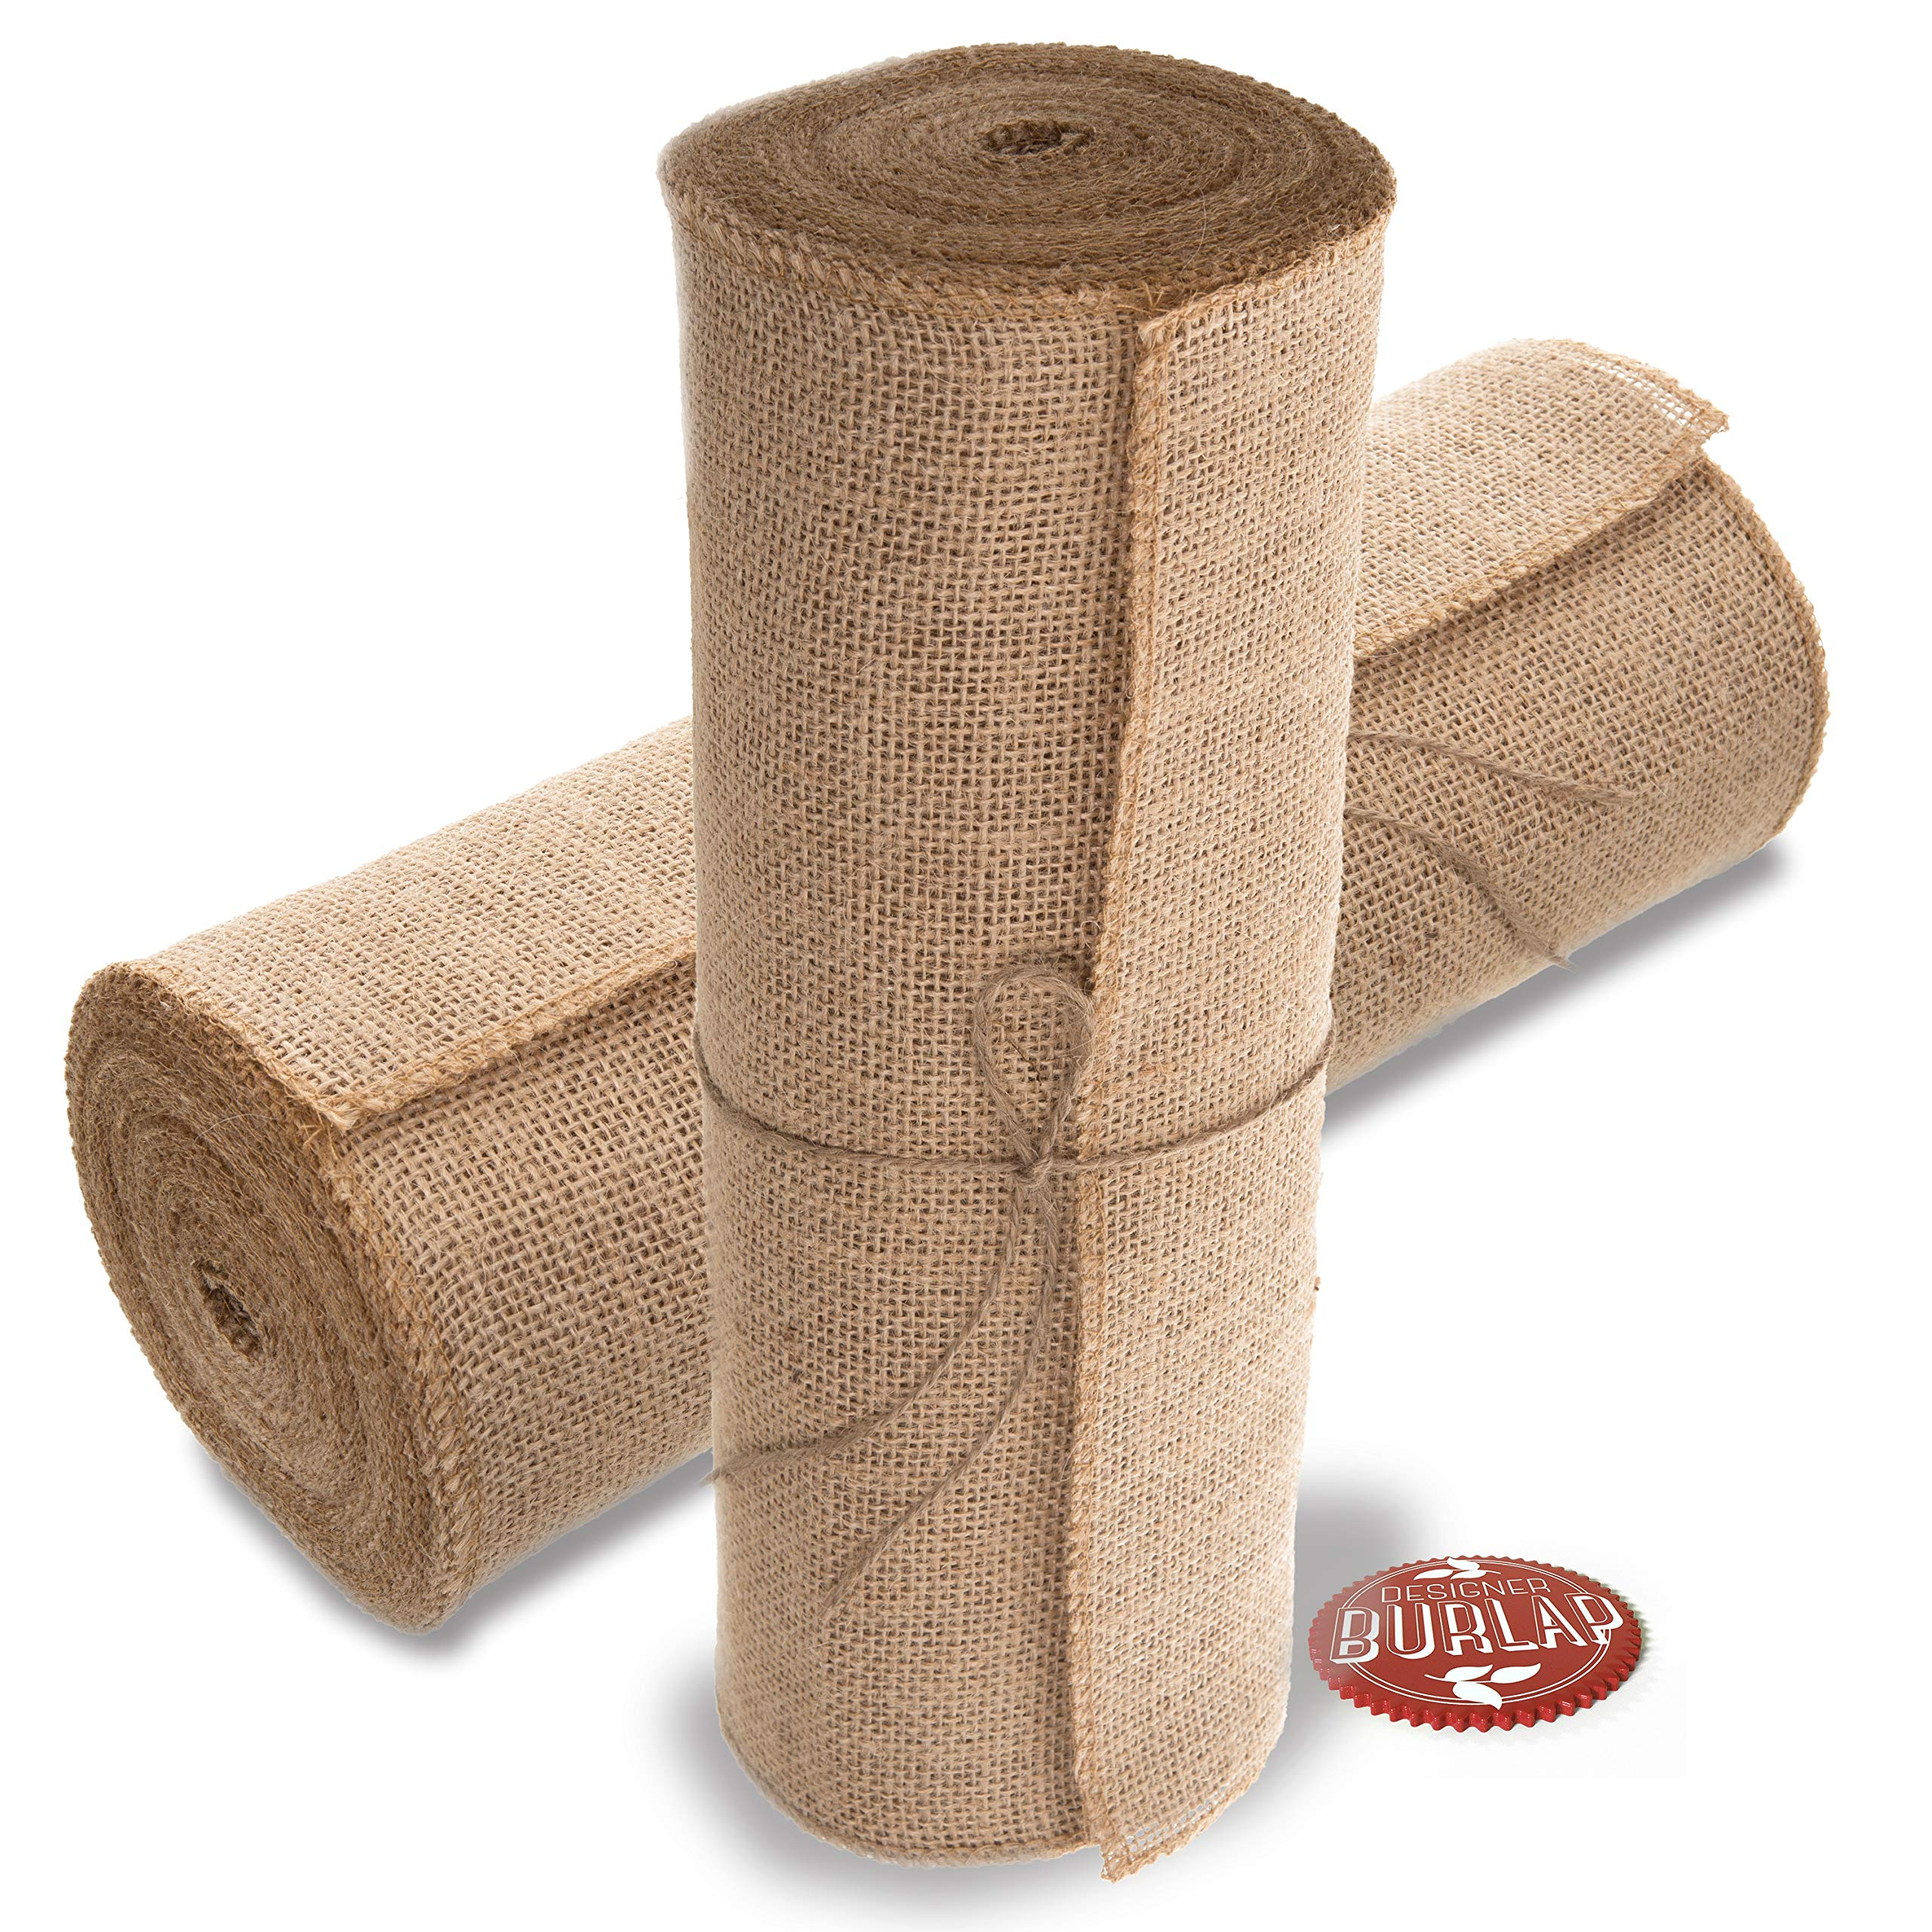 Burlap Table Runner - 14 Inch Wide X 10 Yards Long Burlap Roll - Burlap Fabric Rolls. A No-Fray Burlap Runner with Overlocked and Sewn Edges for Rustic Weddings, Decorations and Crafts! by Designer Burlap